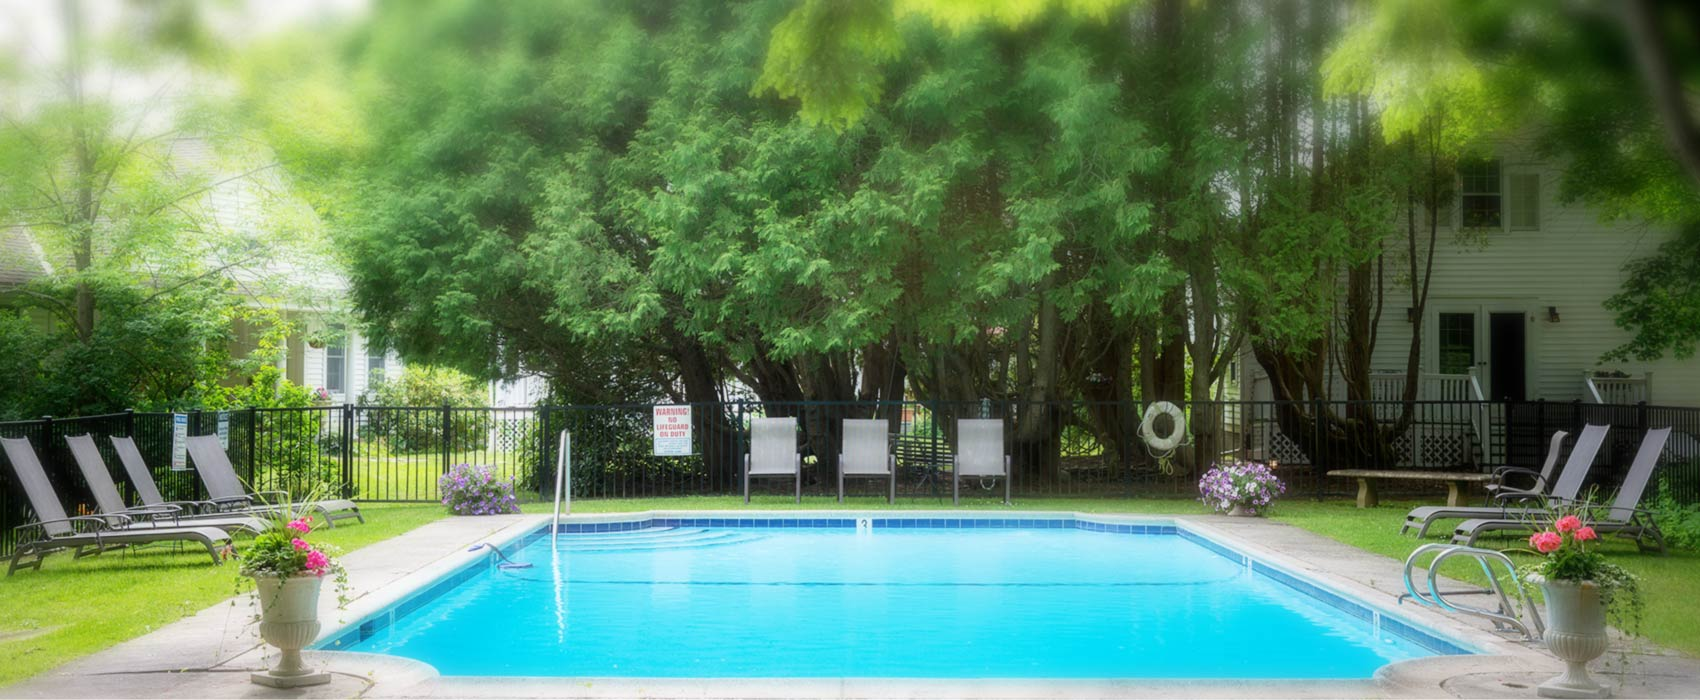 Cool pool waters at the Inn at Stockbridge